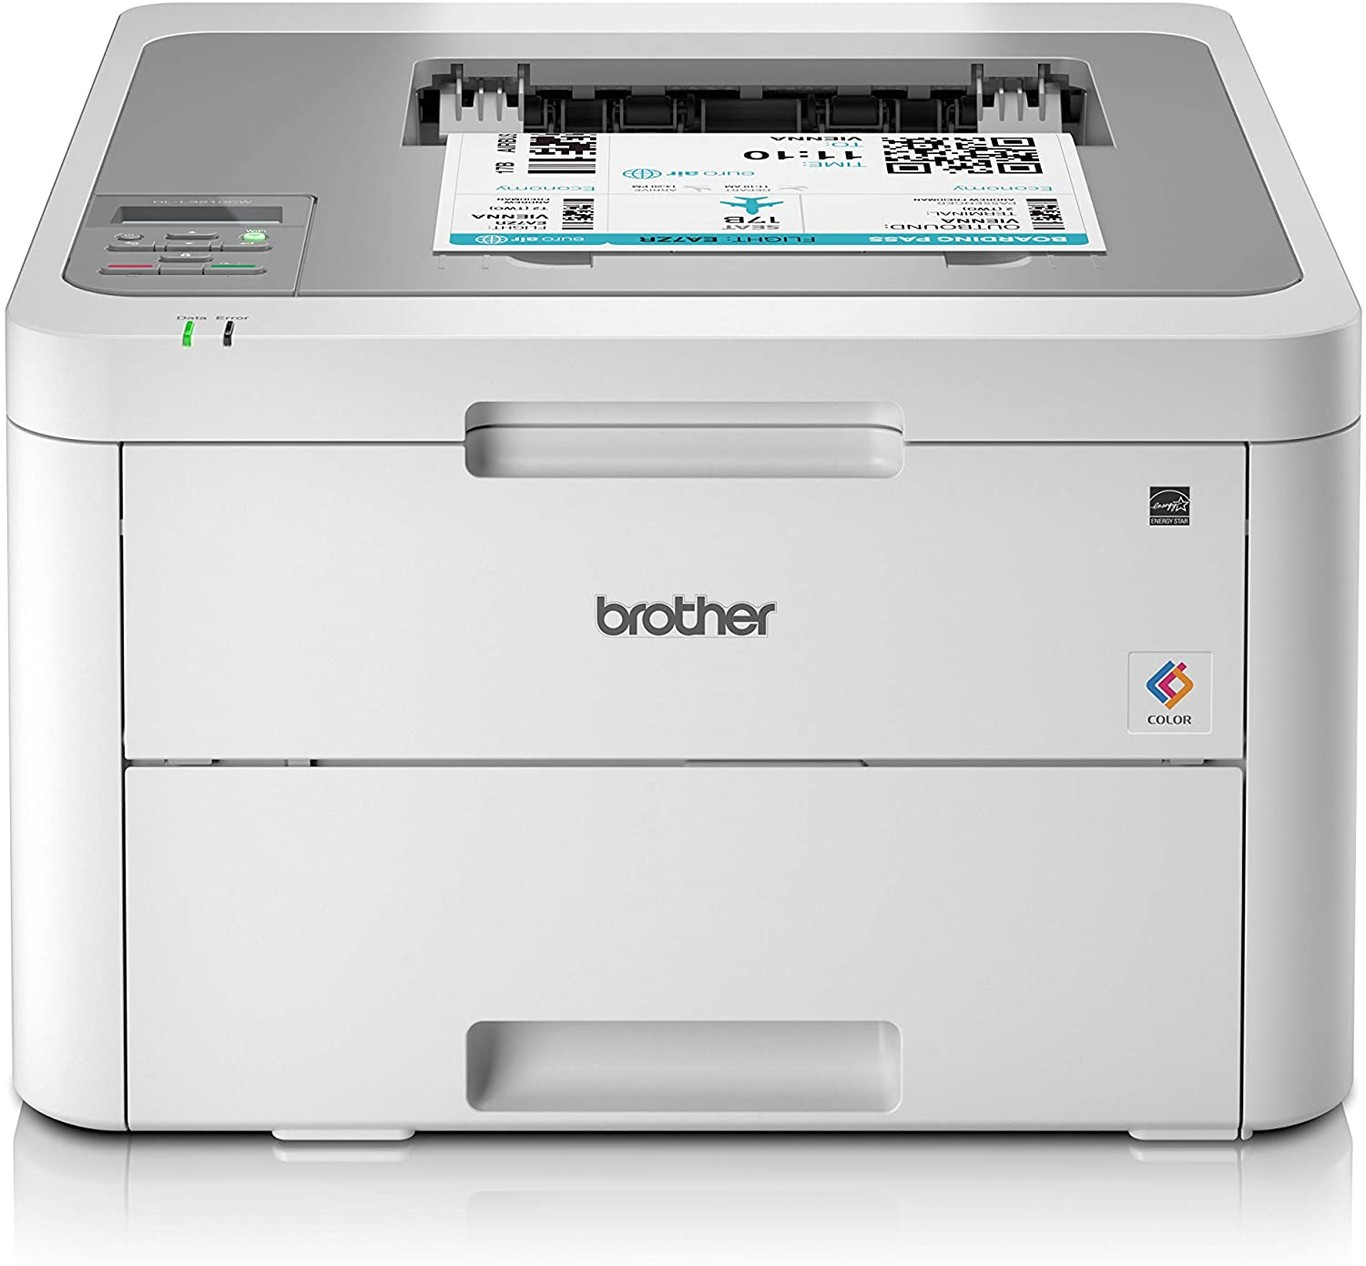 23 Best Printers (2020): Buying Guide With Tips 21